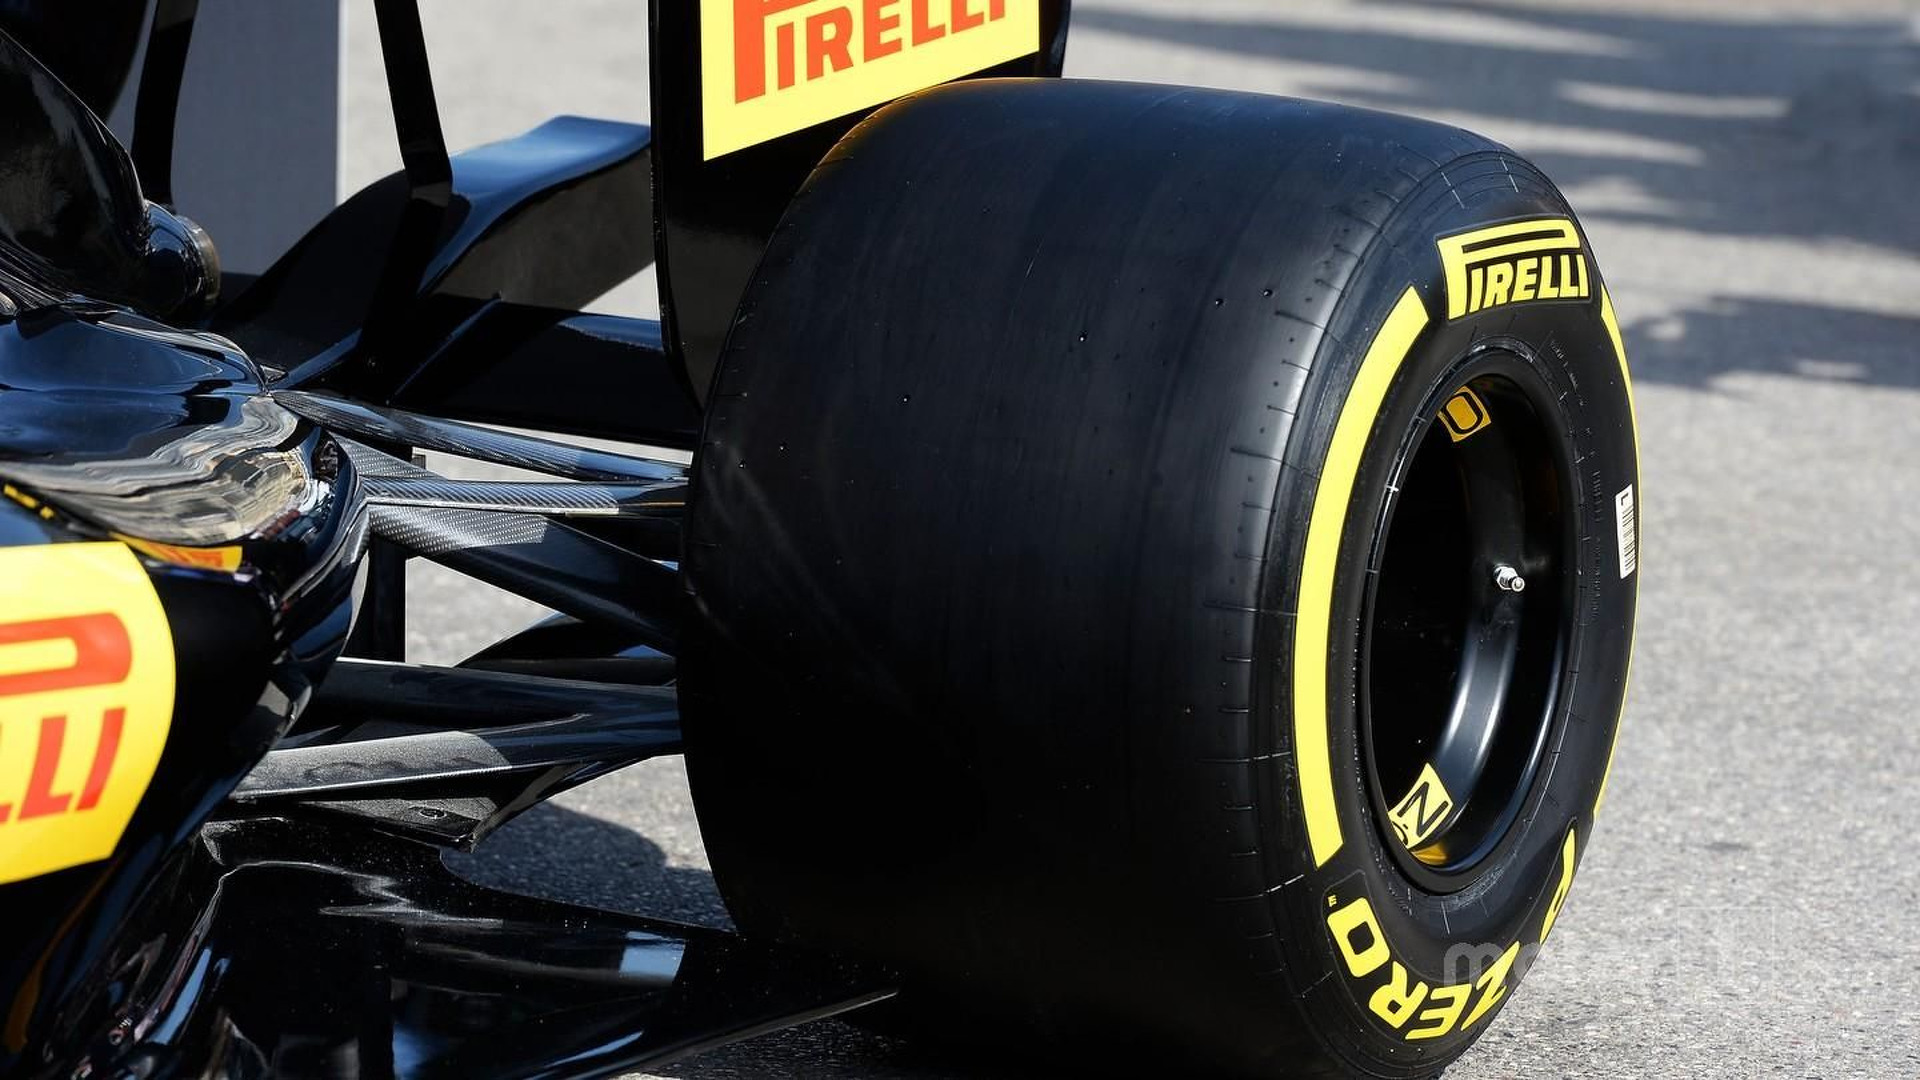 Pirelli says 2017 tyres will be